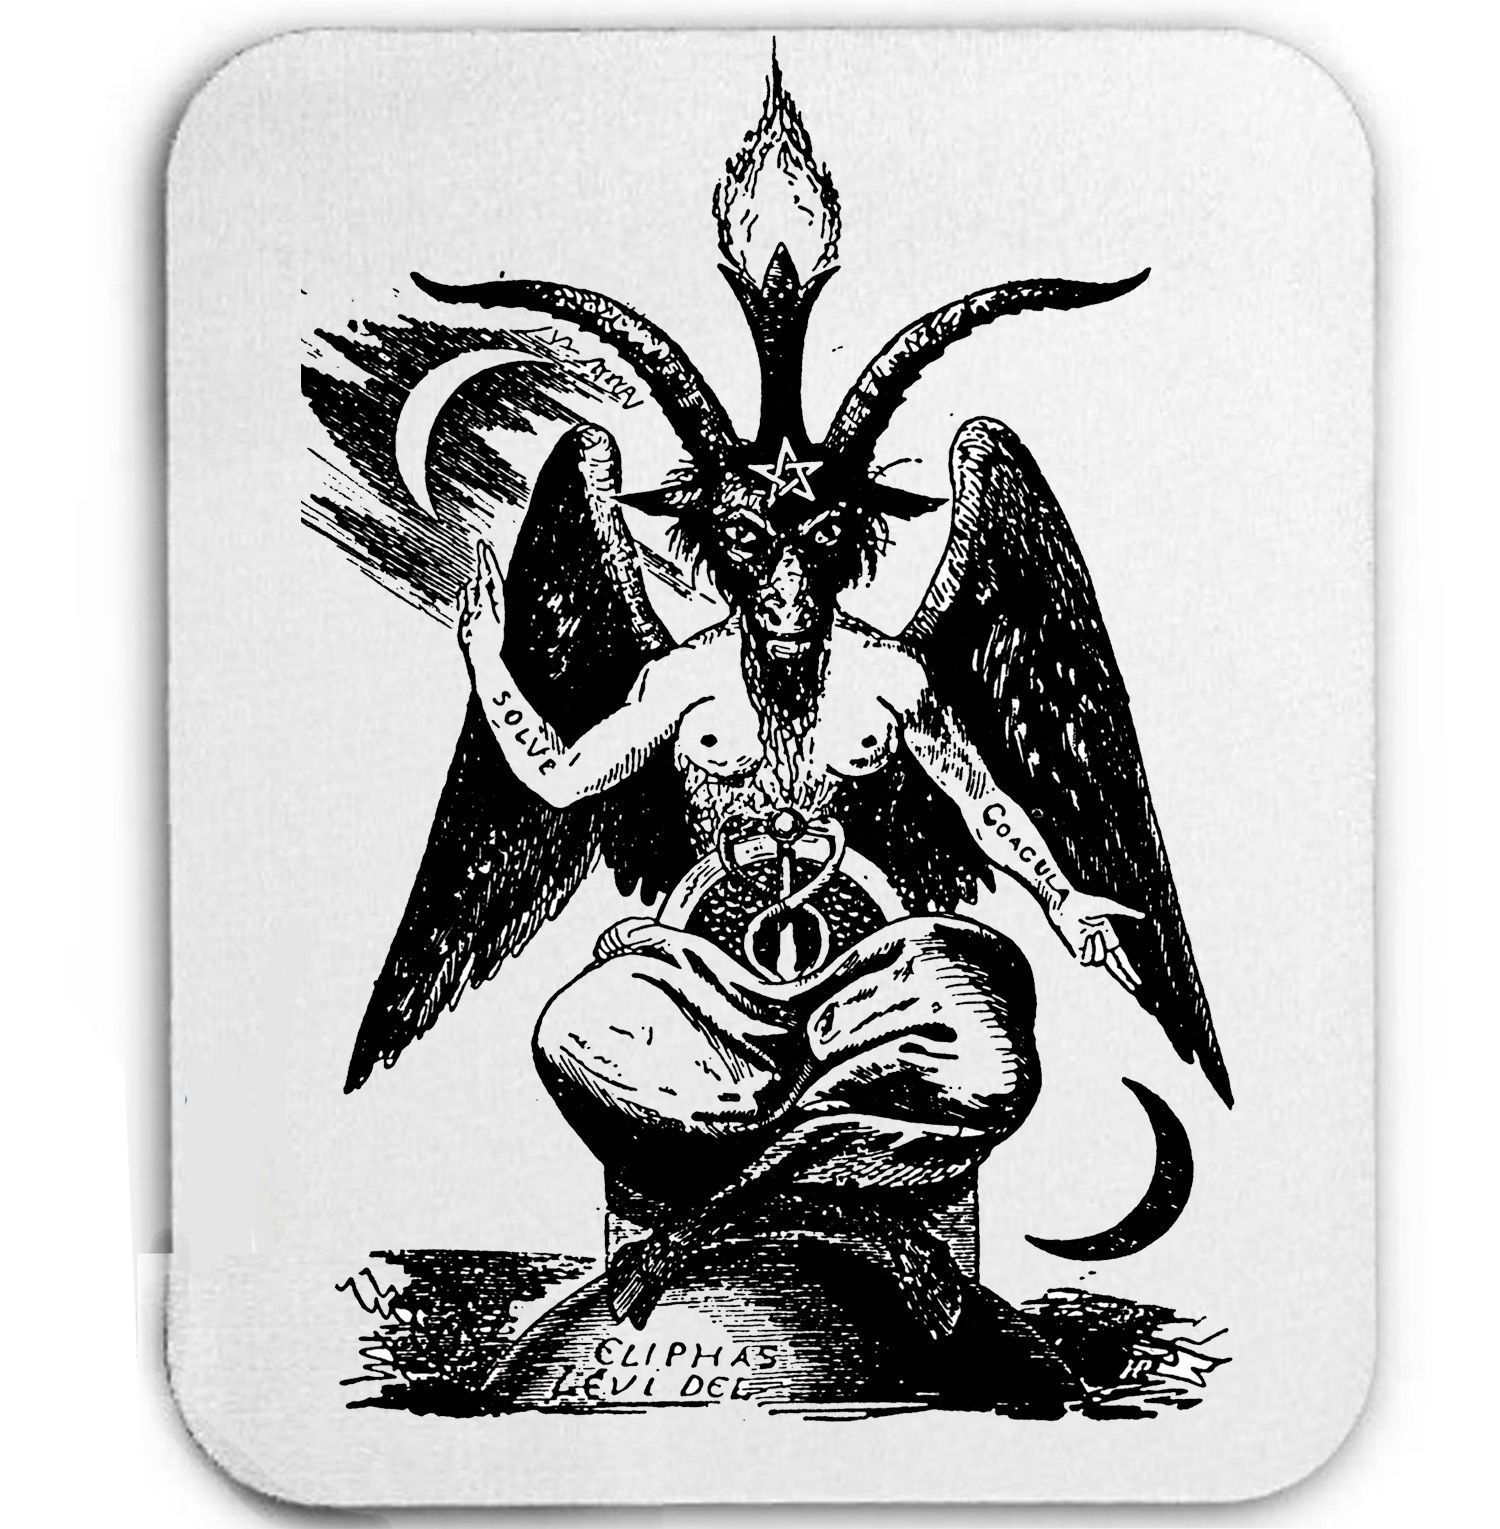 Primary image for BAPHOMET EVIL SPIRIT - MOUSE MAT/PAD AMAZING DESIGN